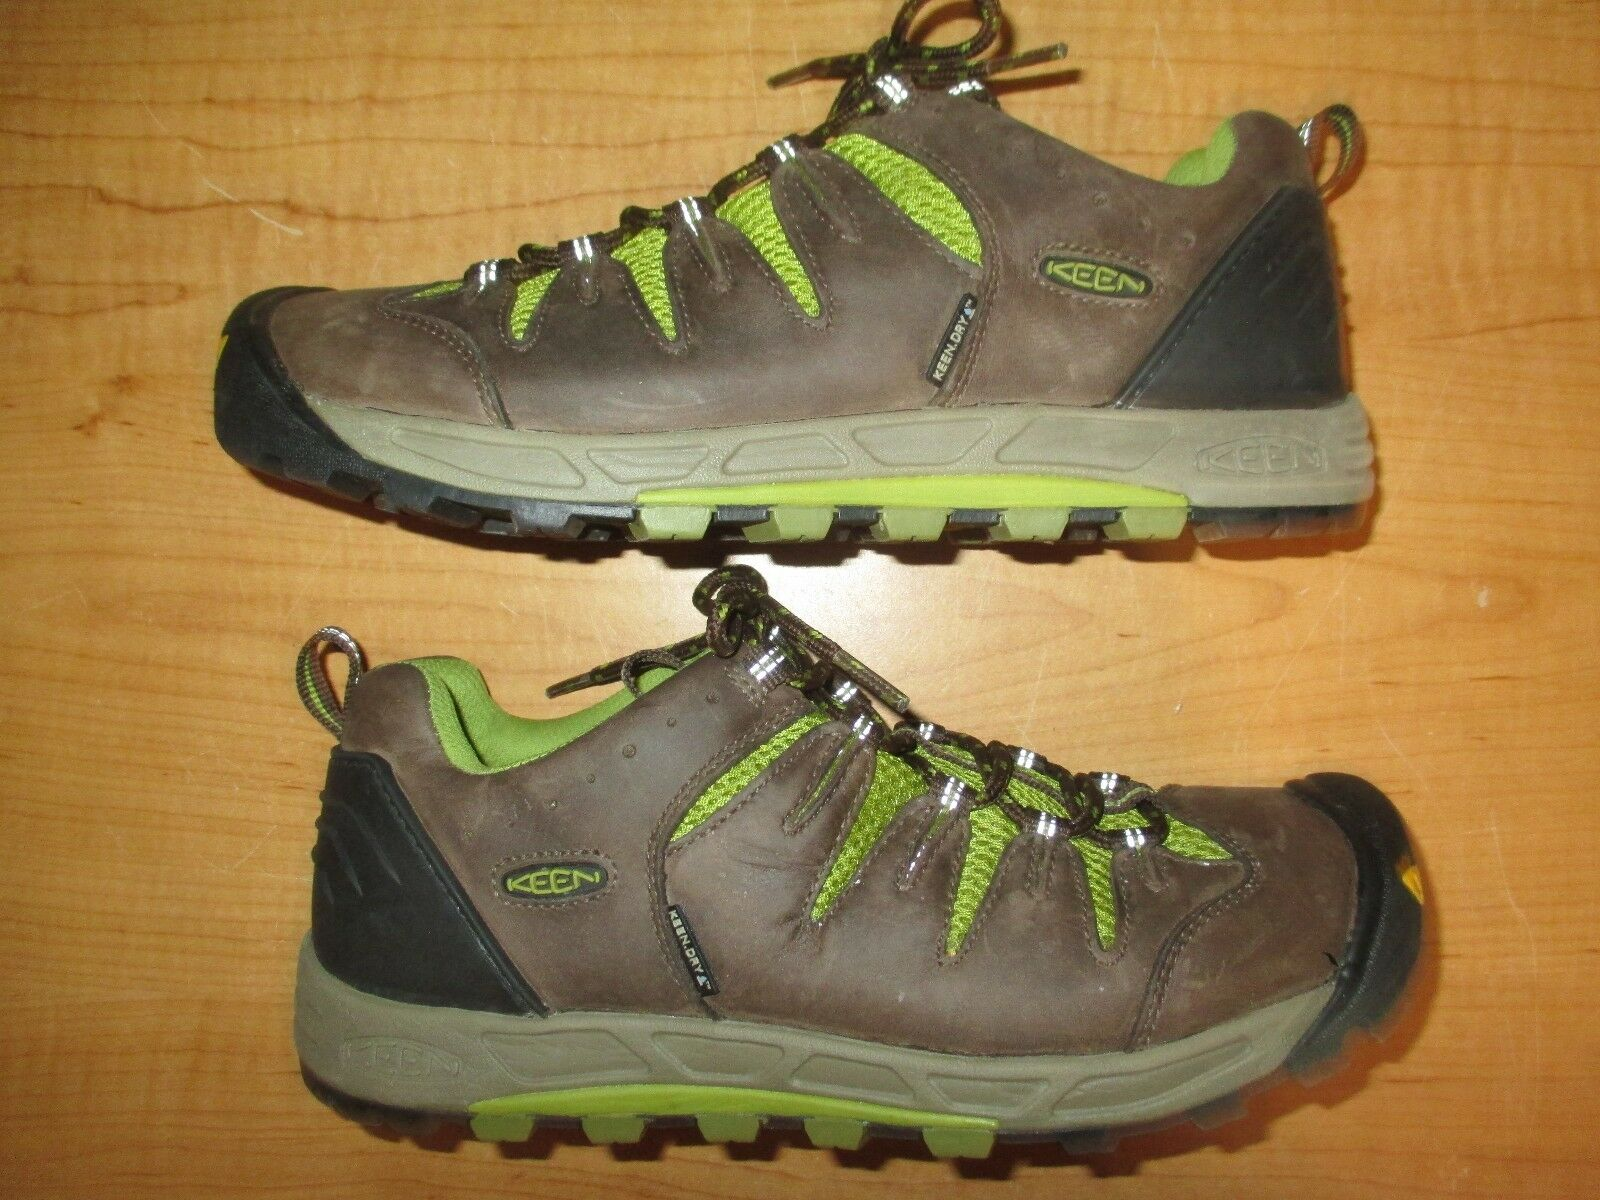 Keen Women's Size 9 Leather Hiking shoes - Pristine - Worn 1 Time - Fast Ship